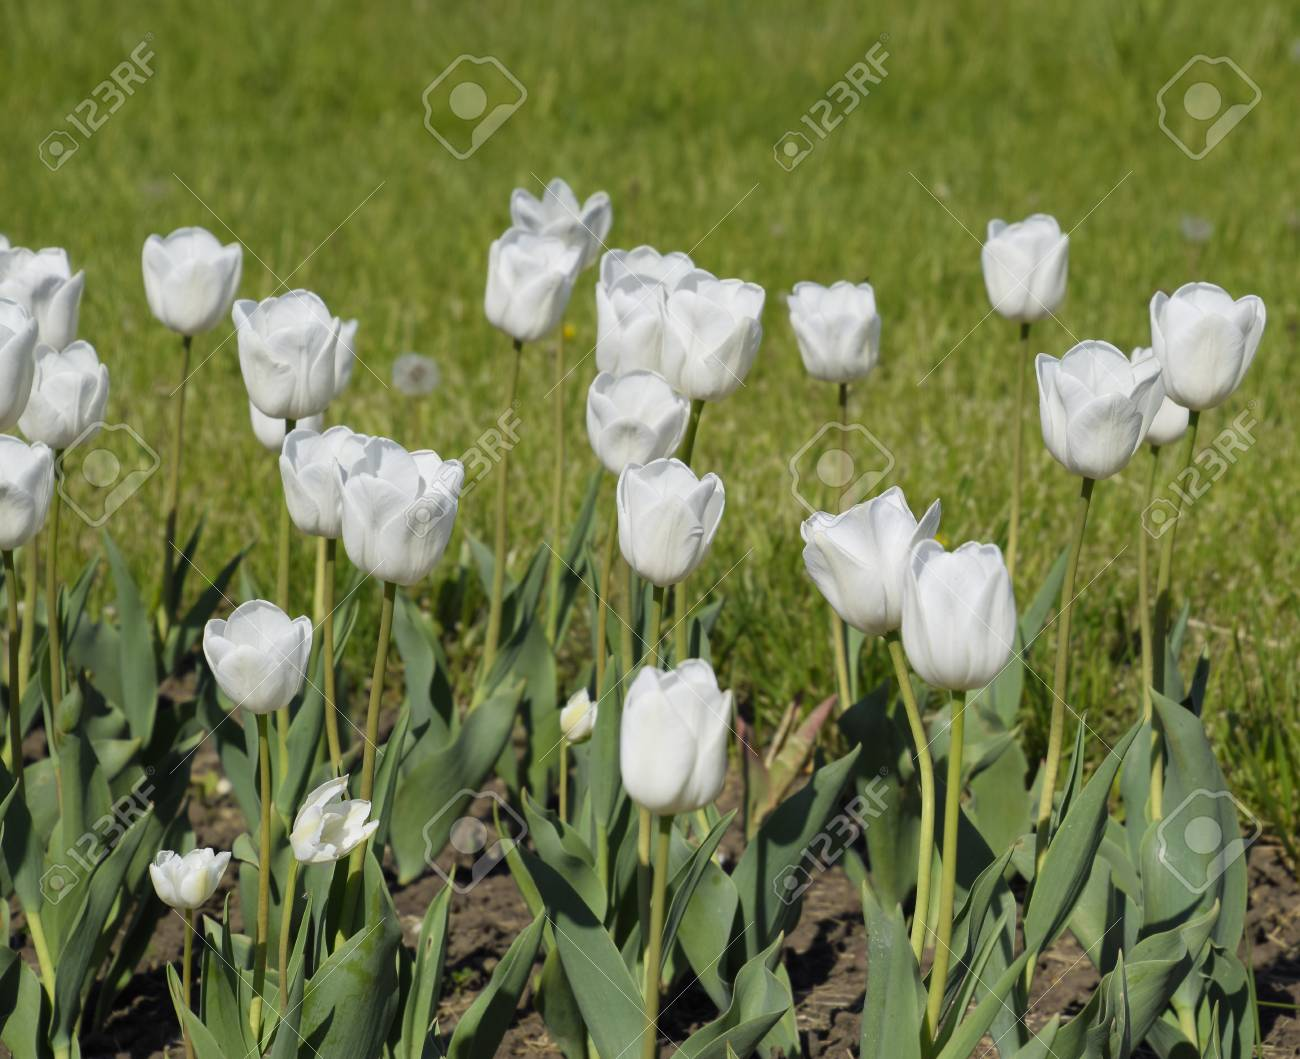 A flower bed with white tulips white tulips bulbous plants a flower bed with white tulips white tulips bulbous plants white flowers mightylinksfo